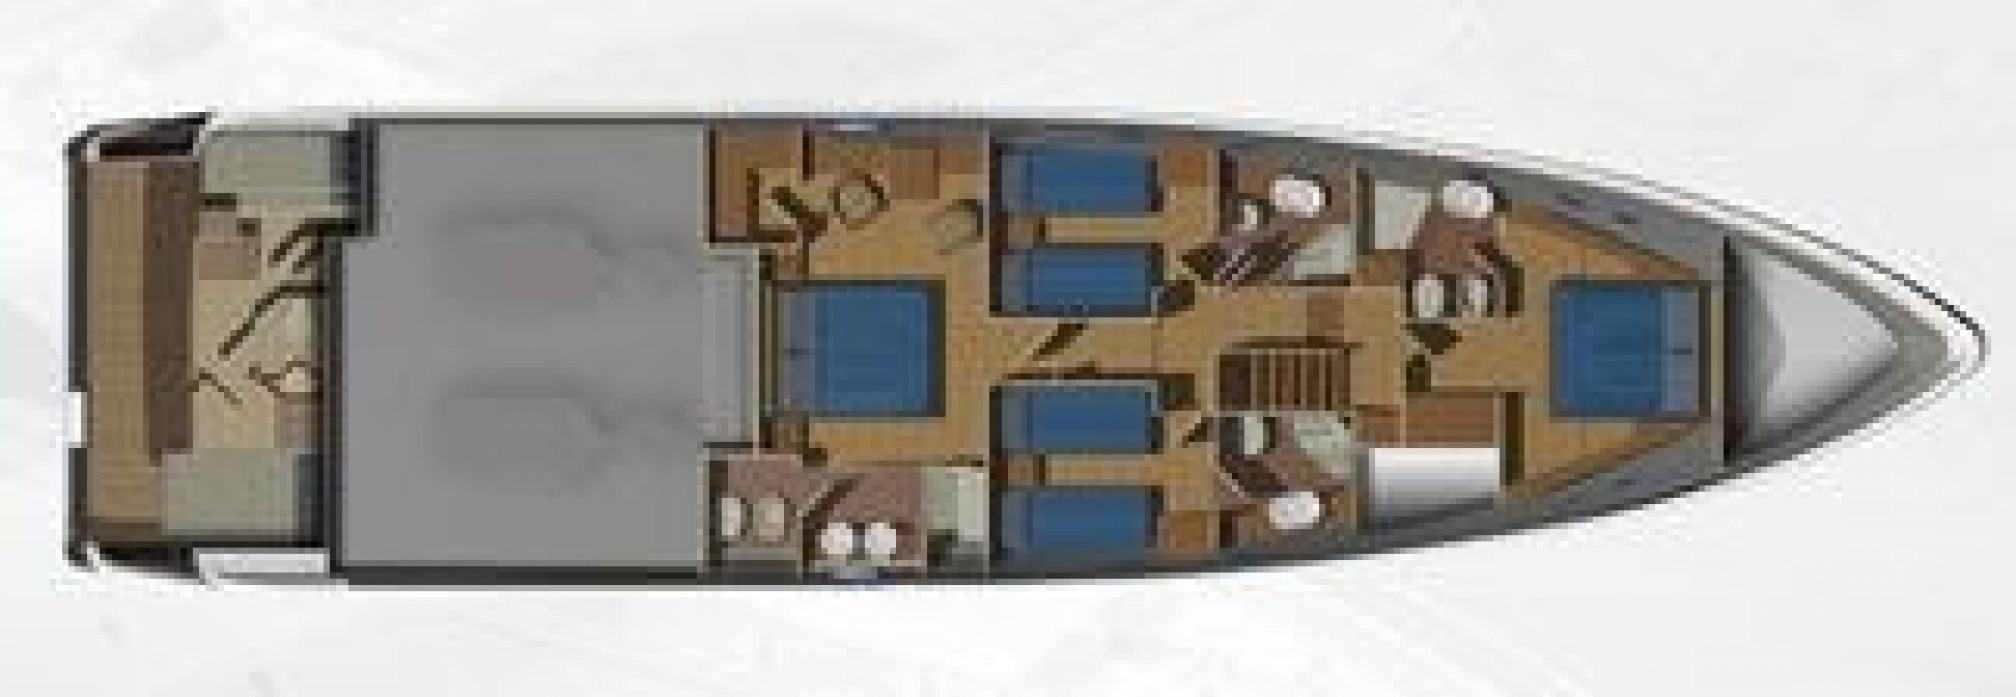 Aicon 75 yacht charter layout